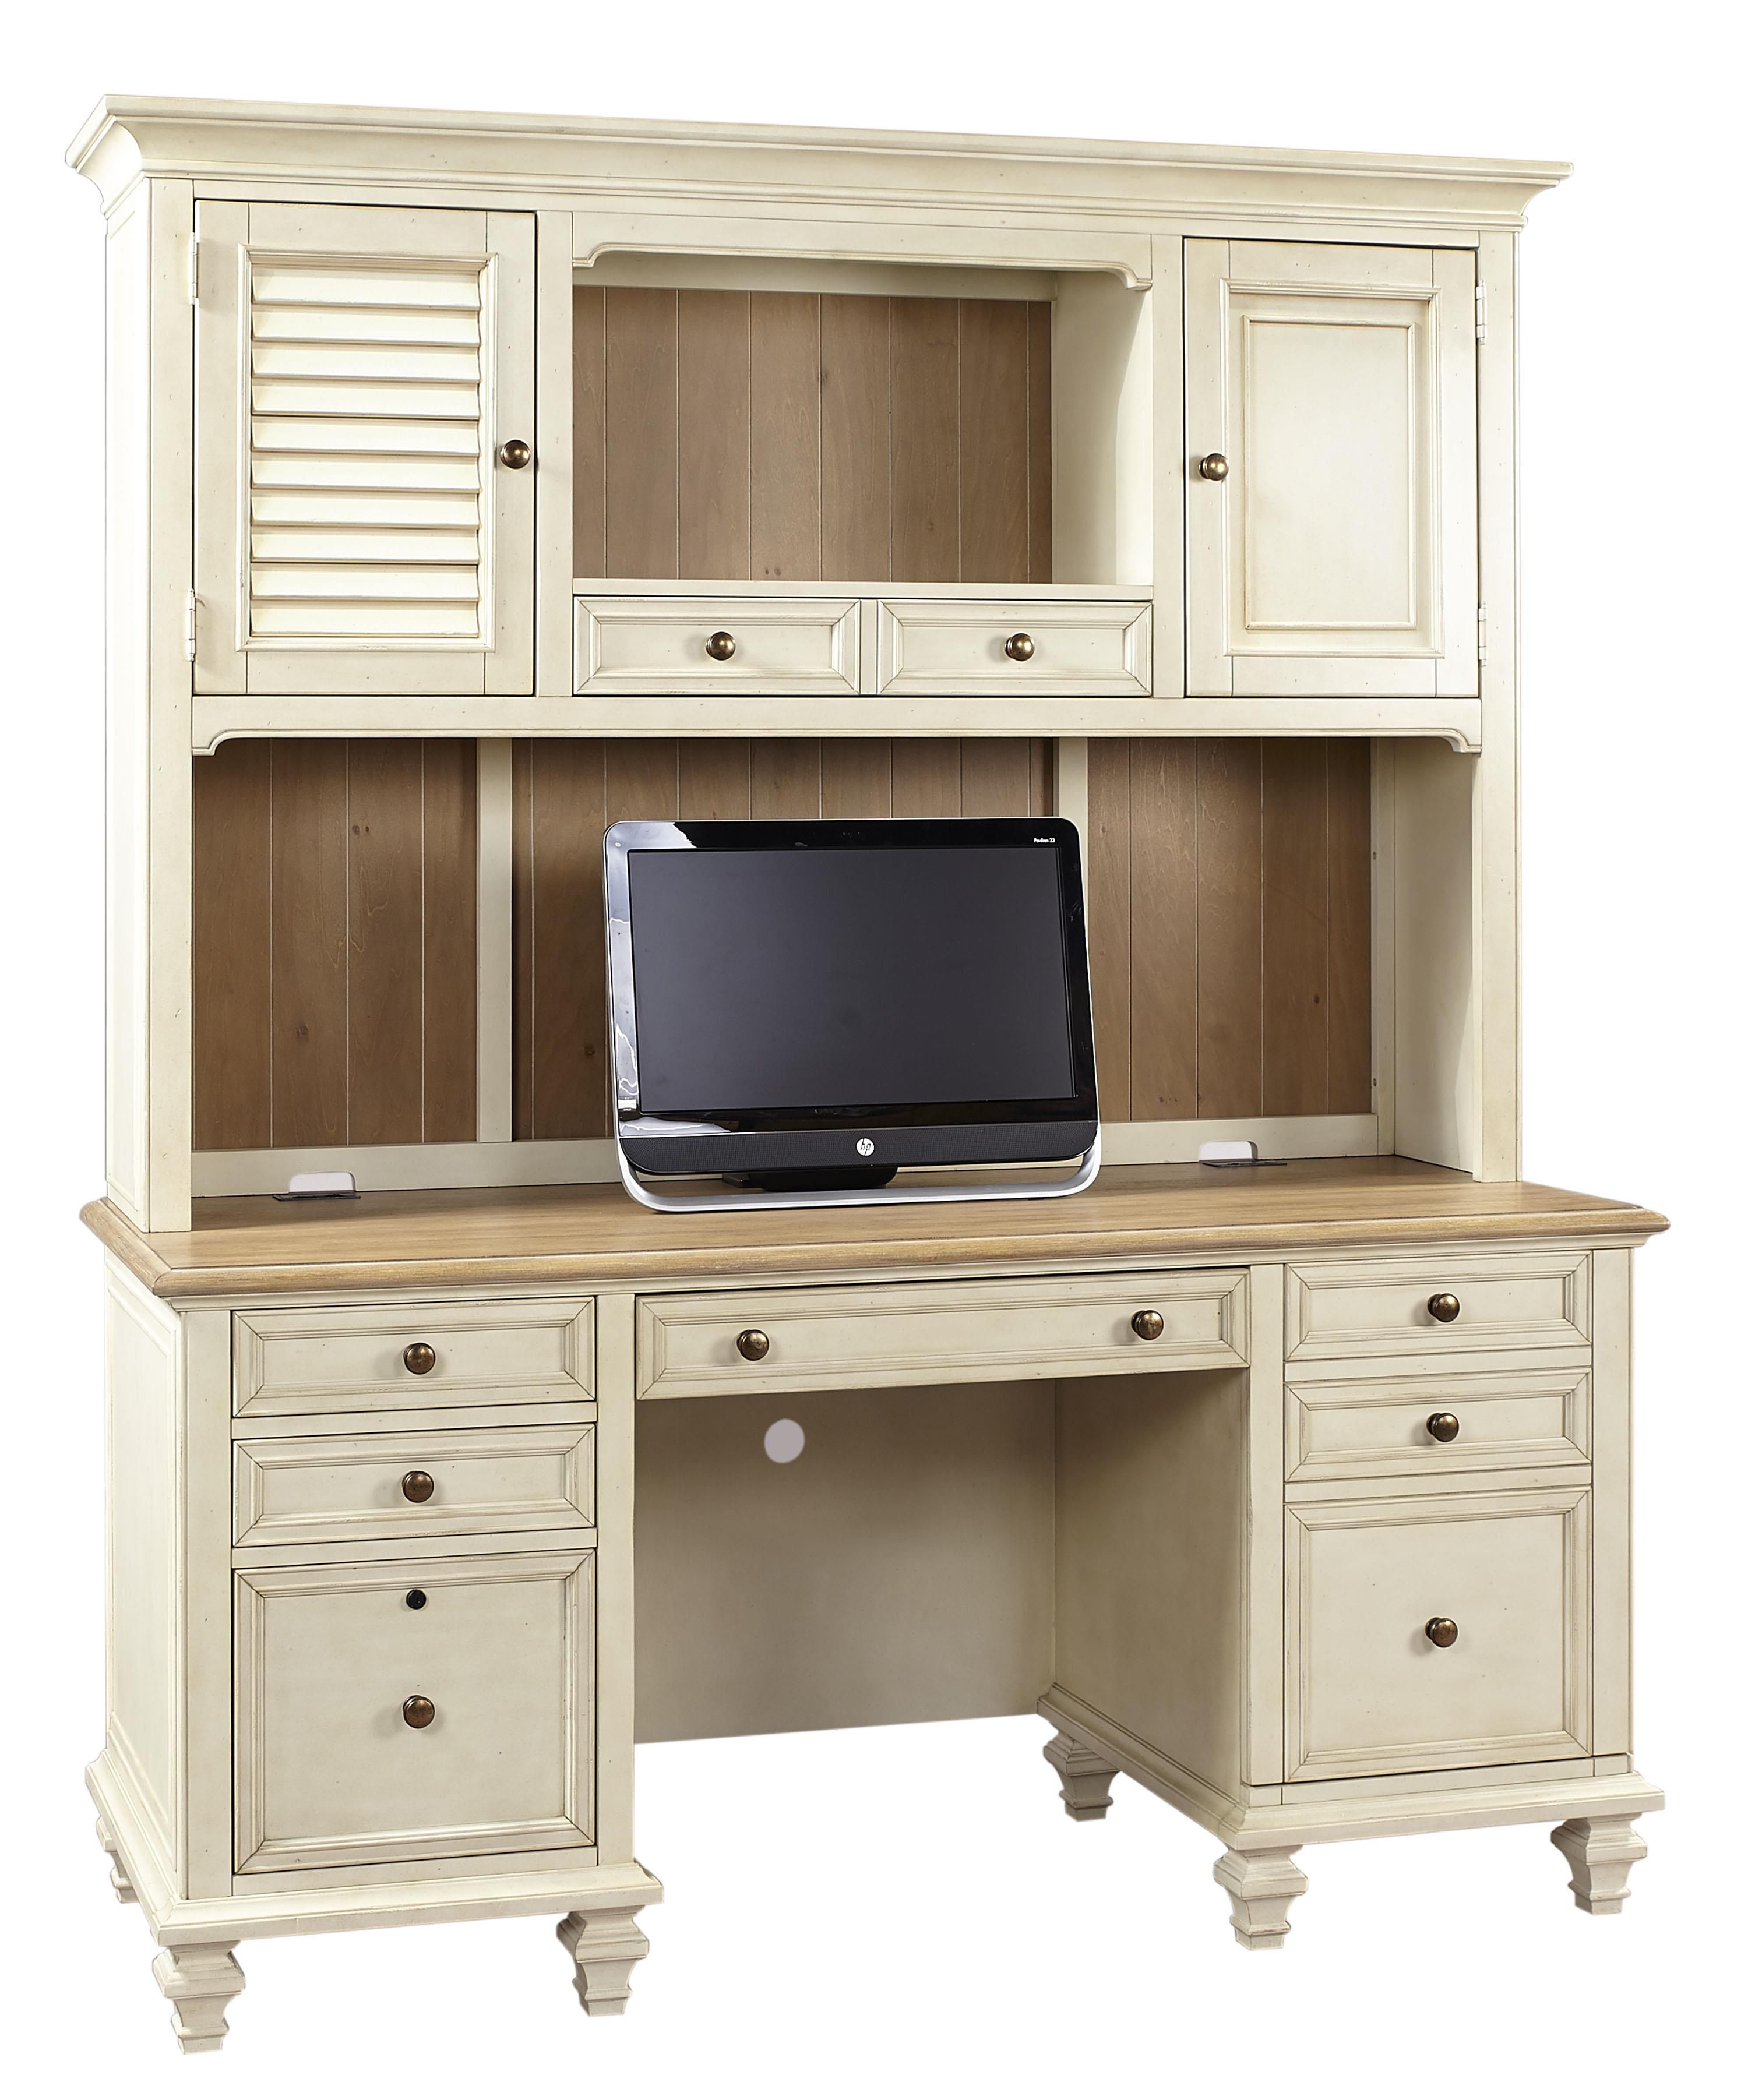 Aspenhome Cottonwood Crendenza With Printer Pullout And